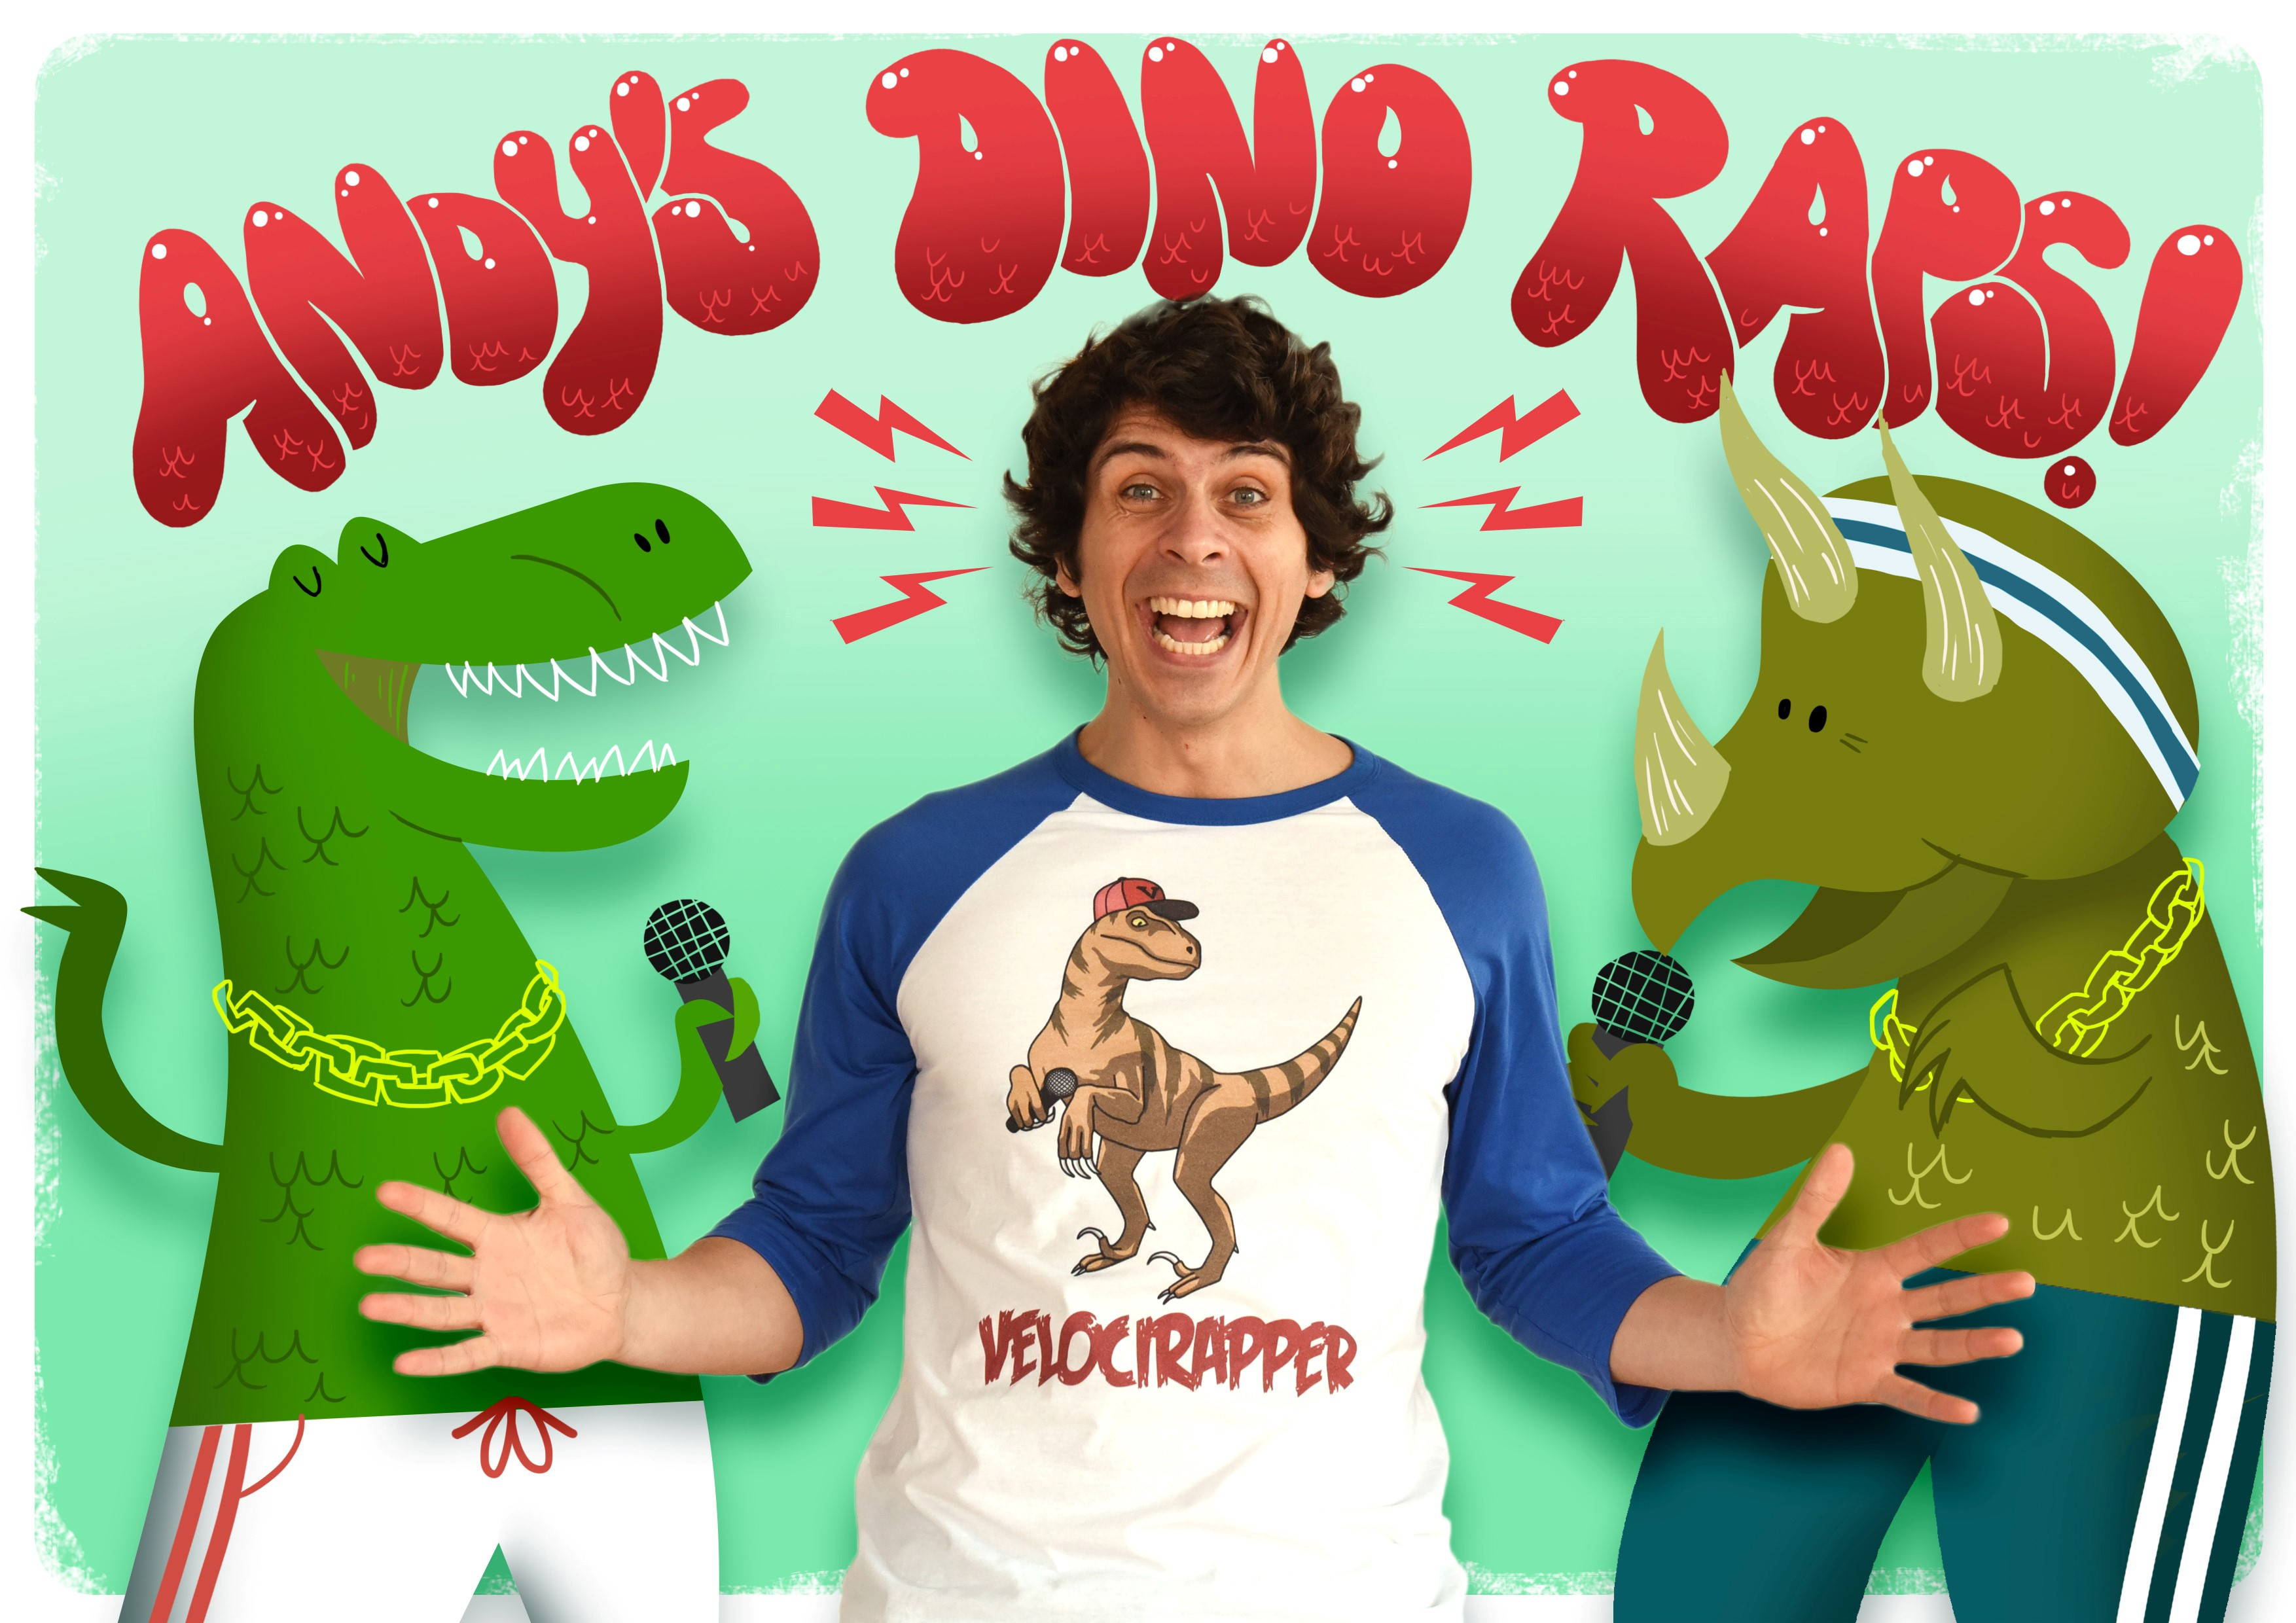 Children's TV entertainer Andy Day is set to visit Brewery Square, Dorchester, on Saturday, 31 March with two free performances of Andy's Dino Raps.